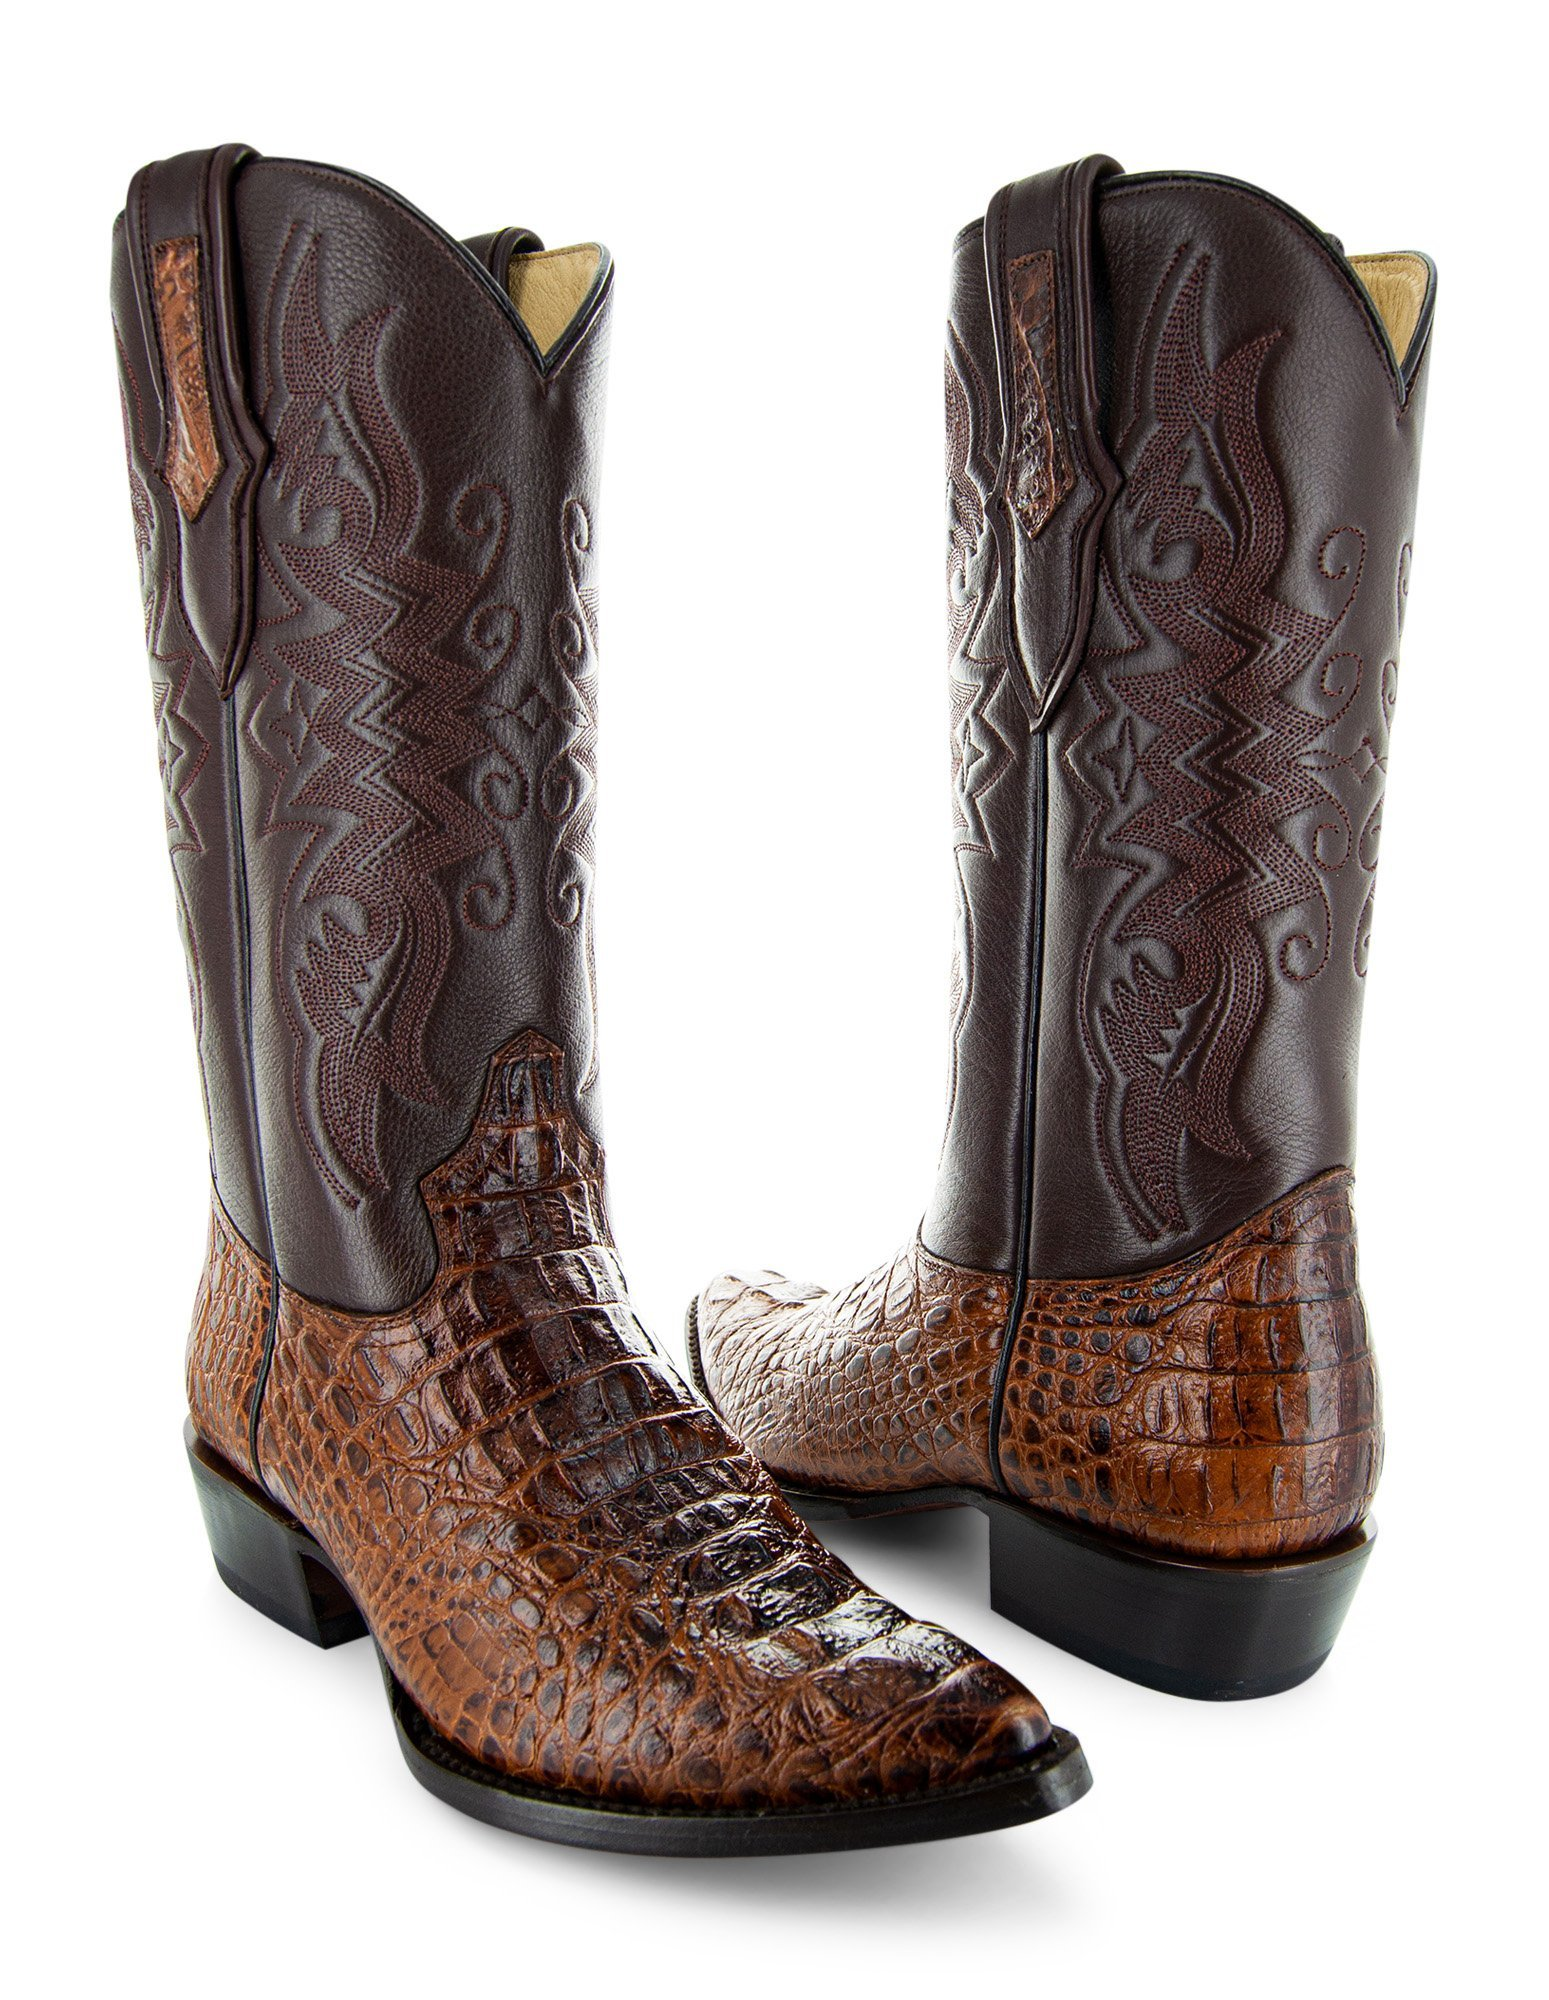 Soto Boots Men's Gator Tail Print Cowboy Boots